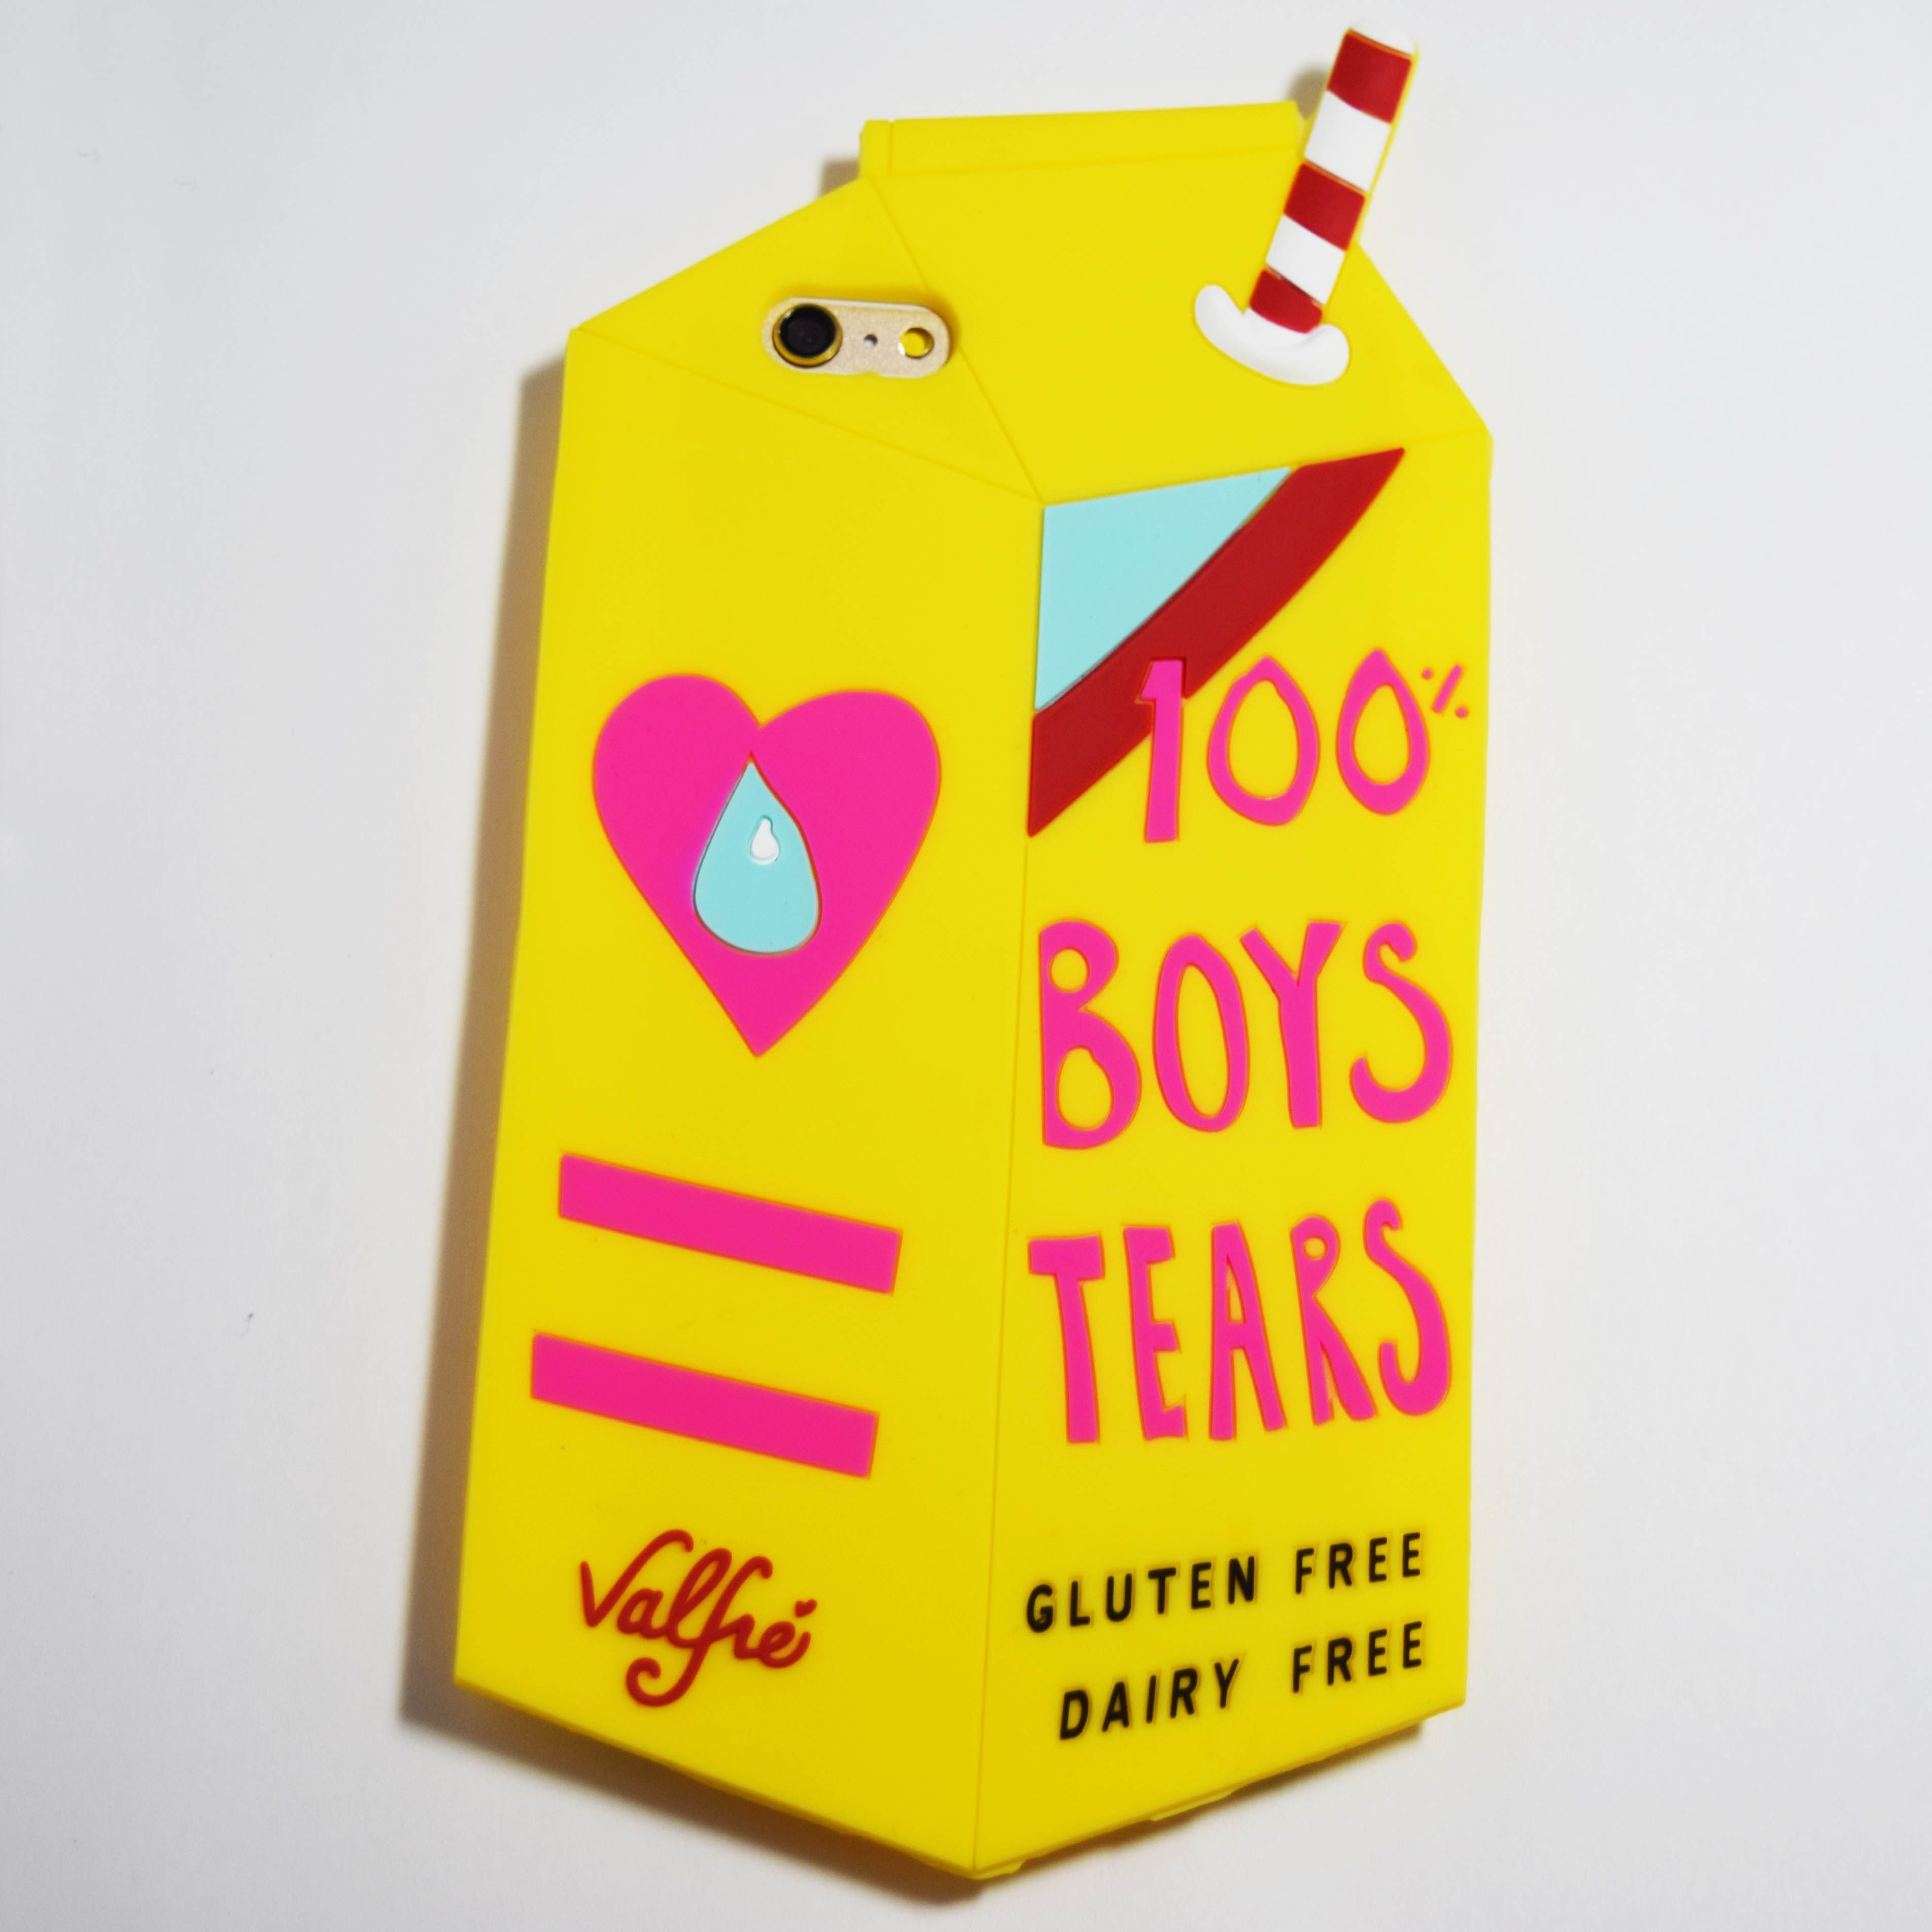 low priced cb267 f1481 Yellow 100% Boys Tears iPhone 6 Plus / 6S Plus Case -   phone cases ...